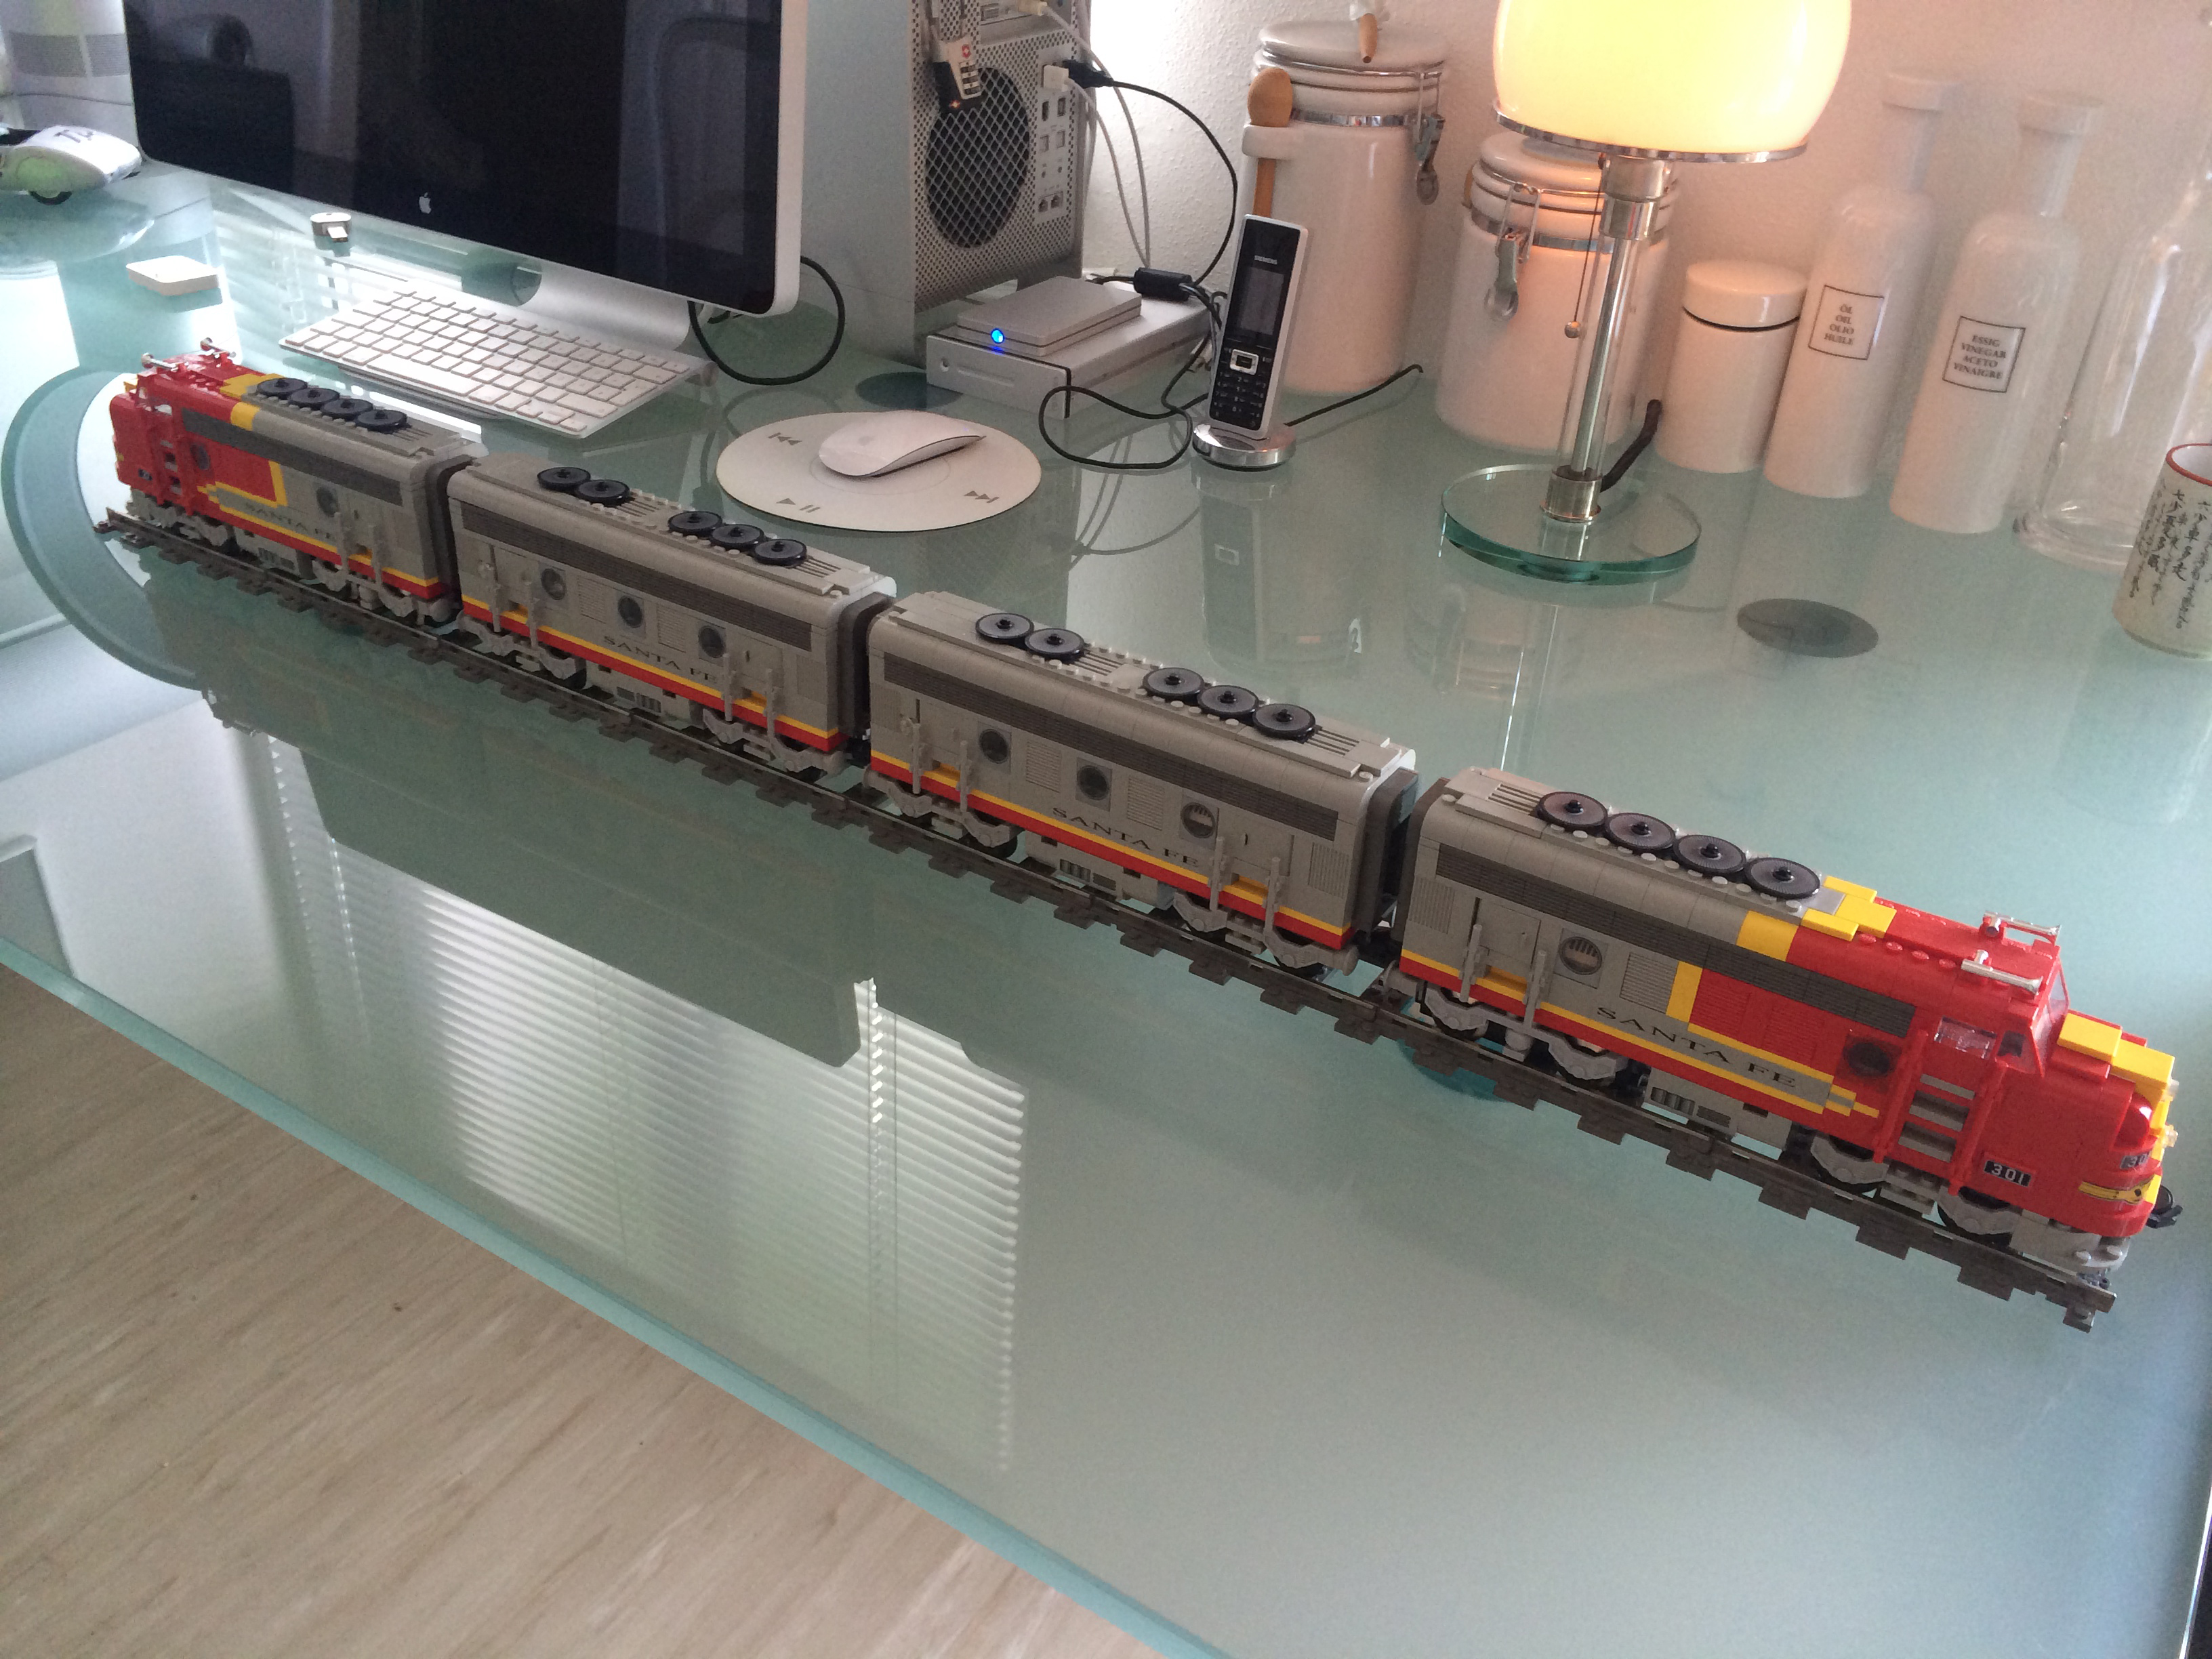 Question For Trainspotters Re The Santa Fe Super Chief Lego Train